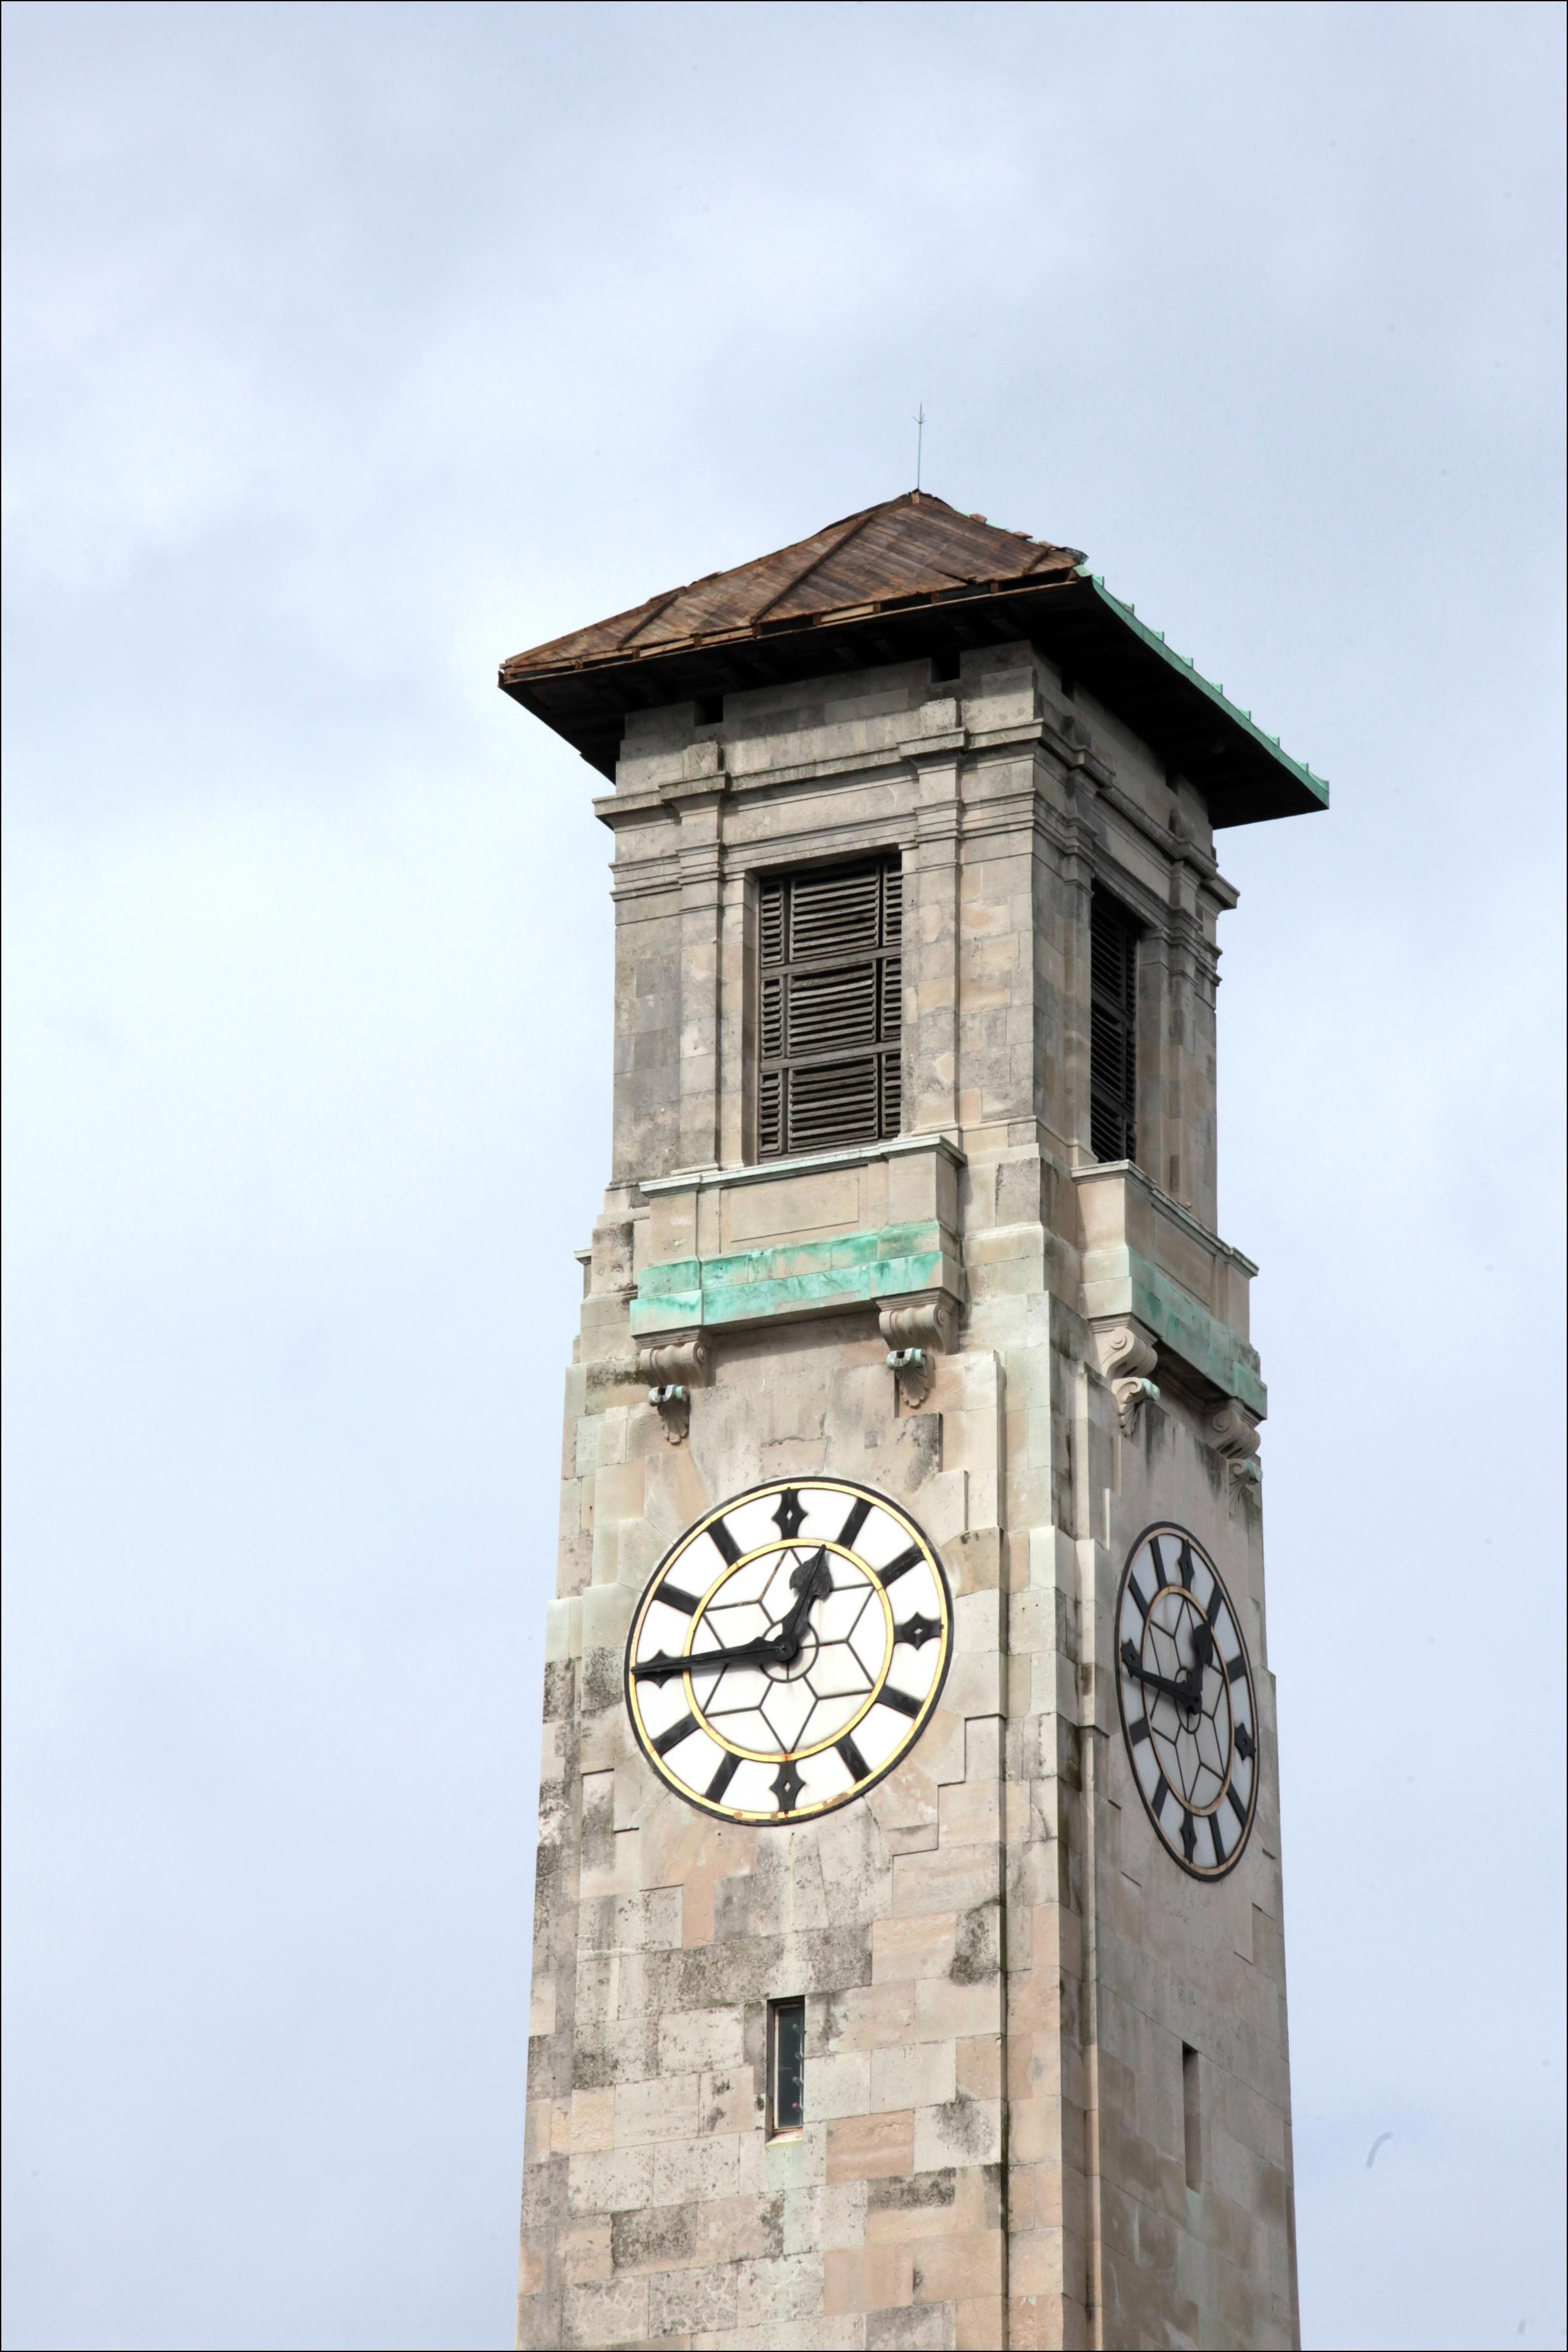 The Civic Centre clock tower